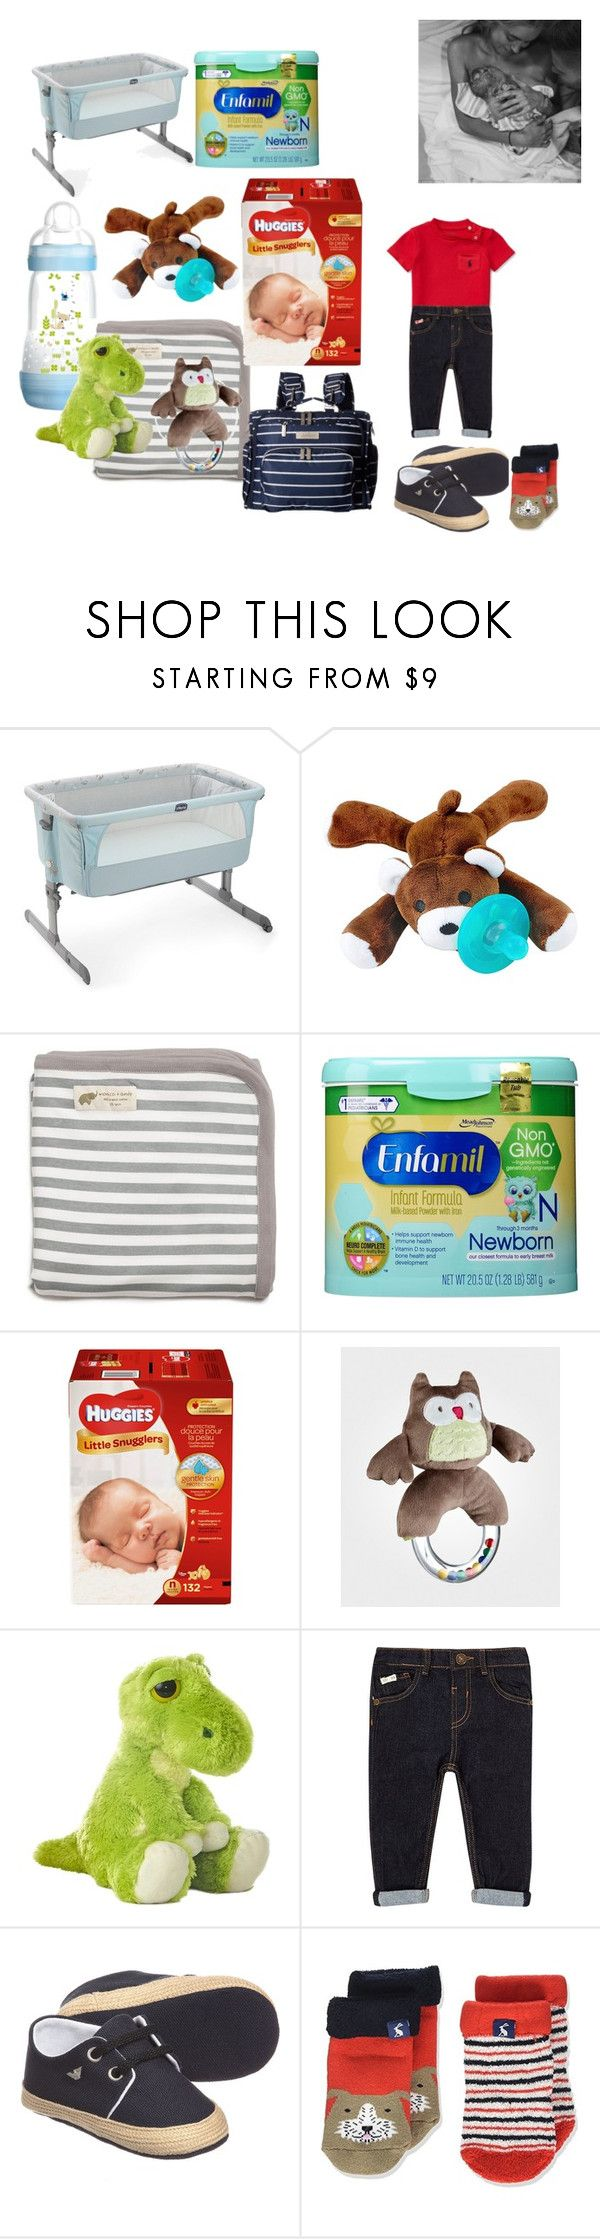 """""""Baby Boy Born In The Apocalypse"""" by cacker0214 ❤ liked on Polyvore featuring CHICCO, Monica + Andy, Lord & Taylor, Giorgio Armani, Joules, Ju Ju Be, men's fashion and menswear"""